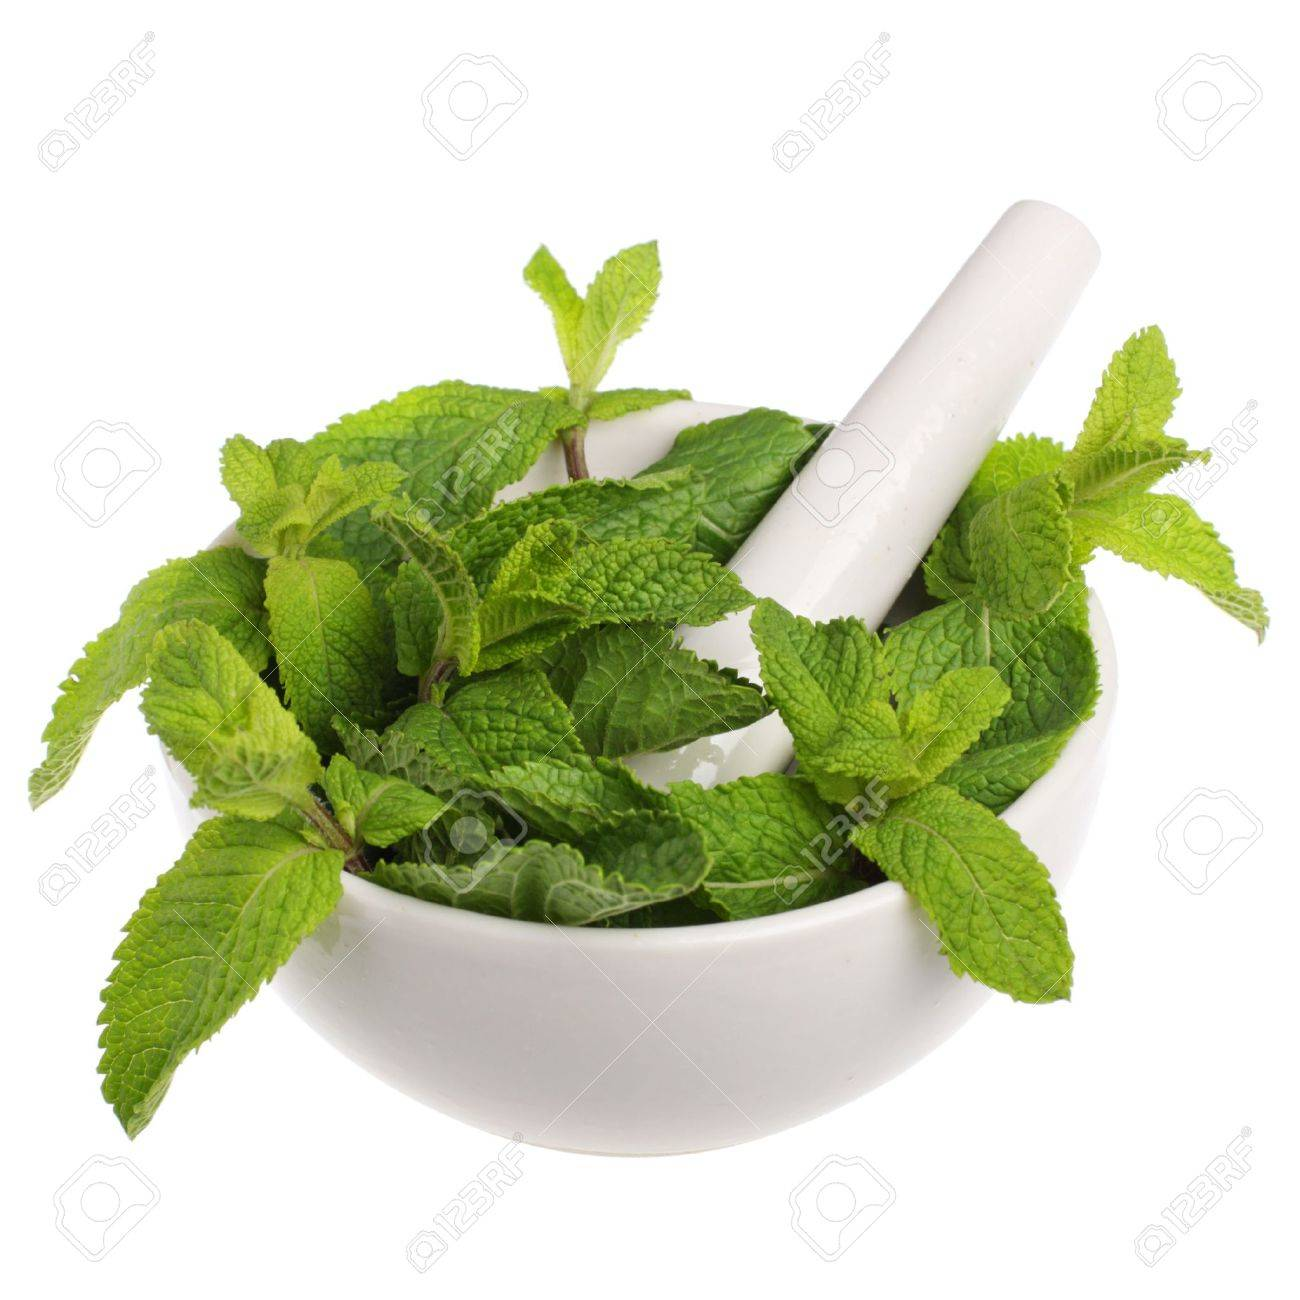 Mortar with mint isolated on white background Stock Photo - 7079035